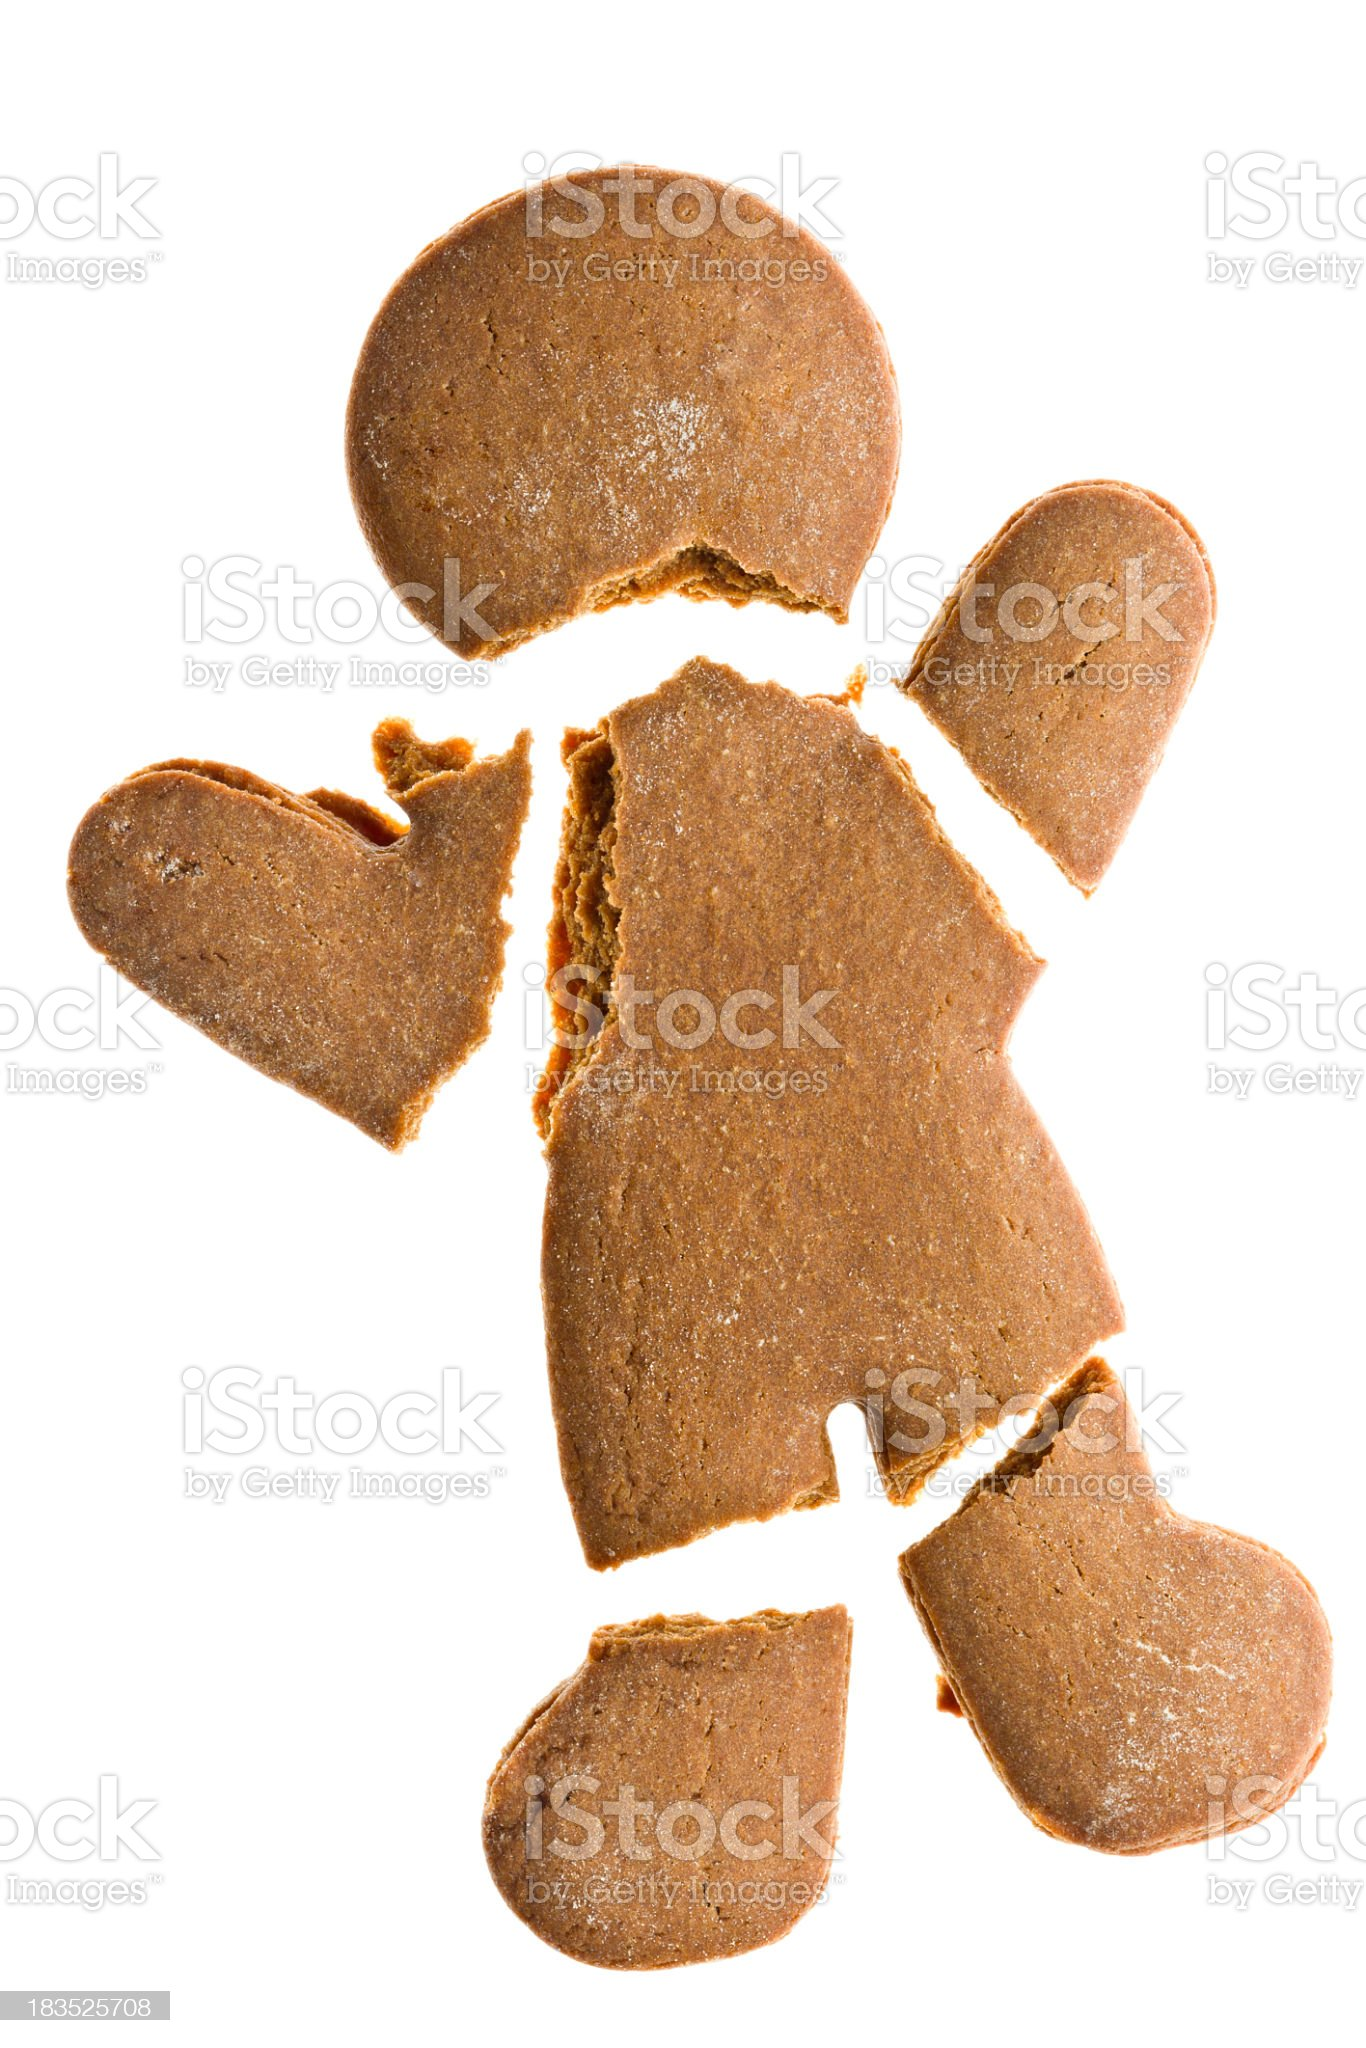 Gingerbread Man Going To Pieces Isolated royalty-free stock photo